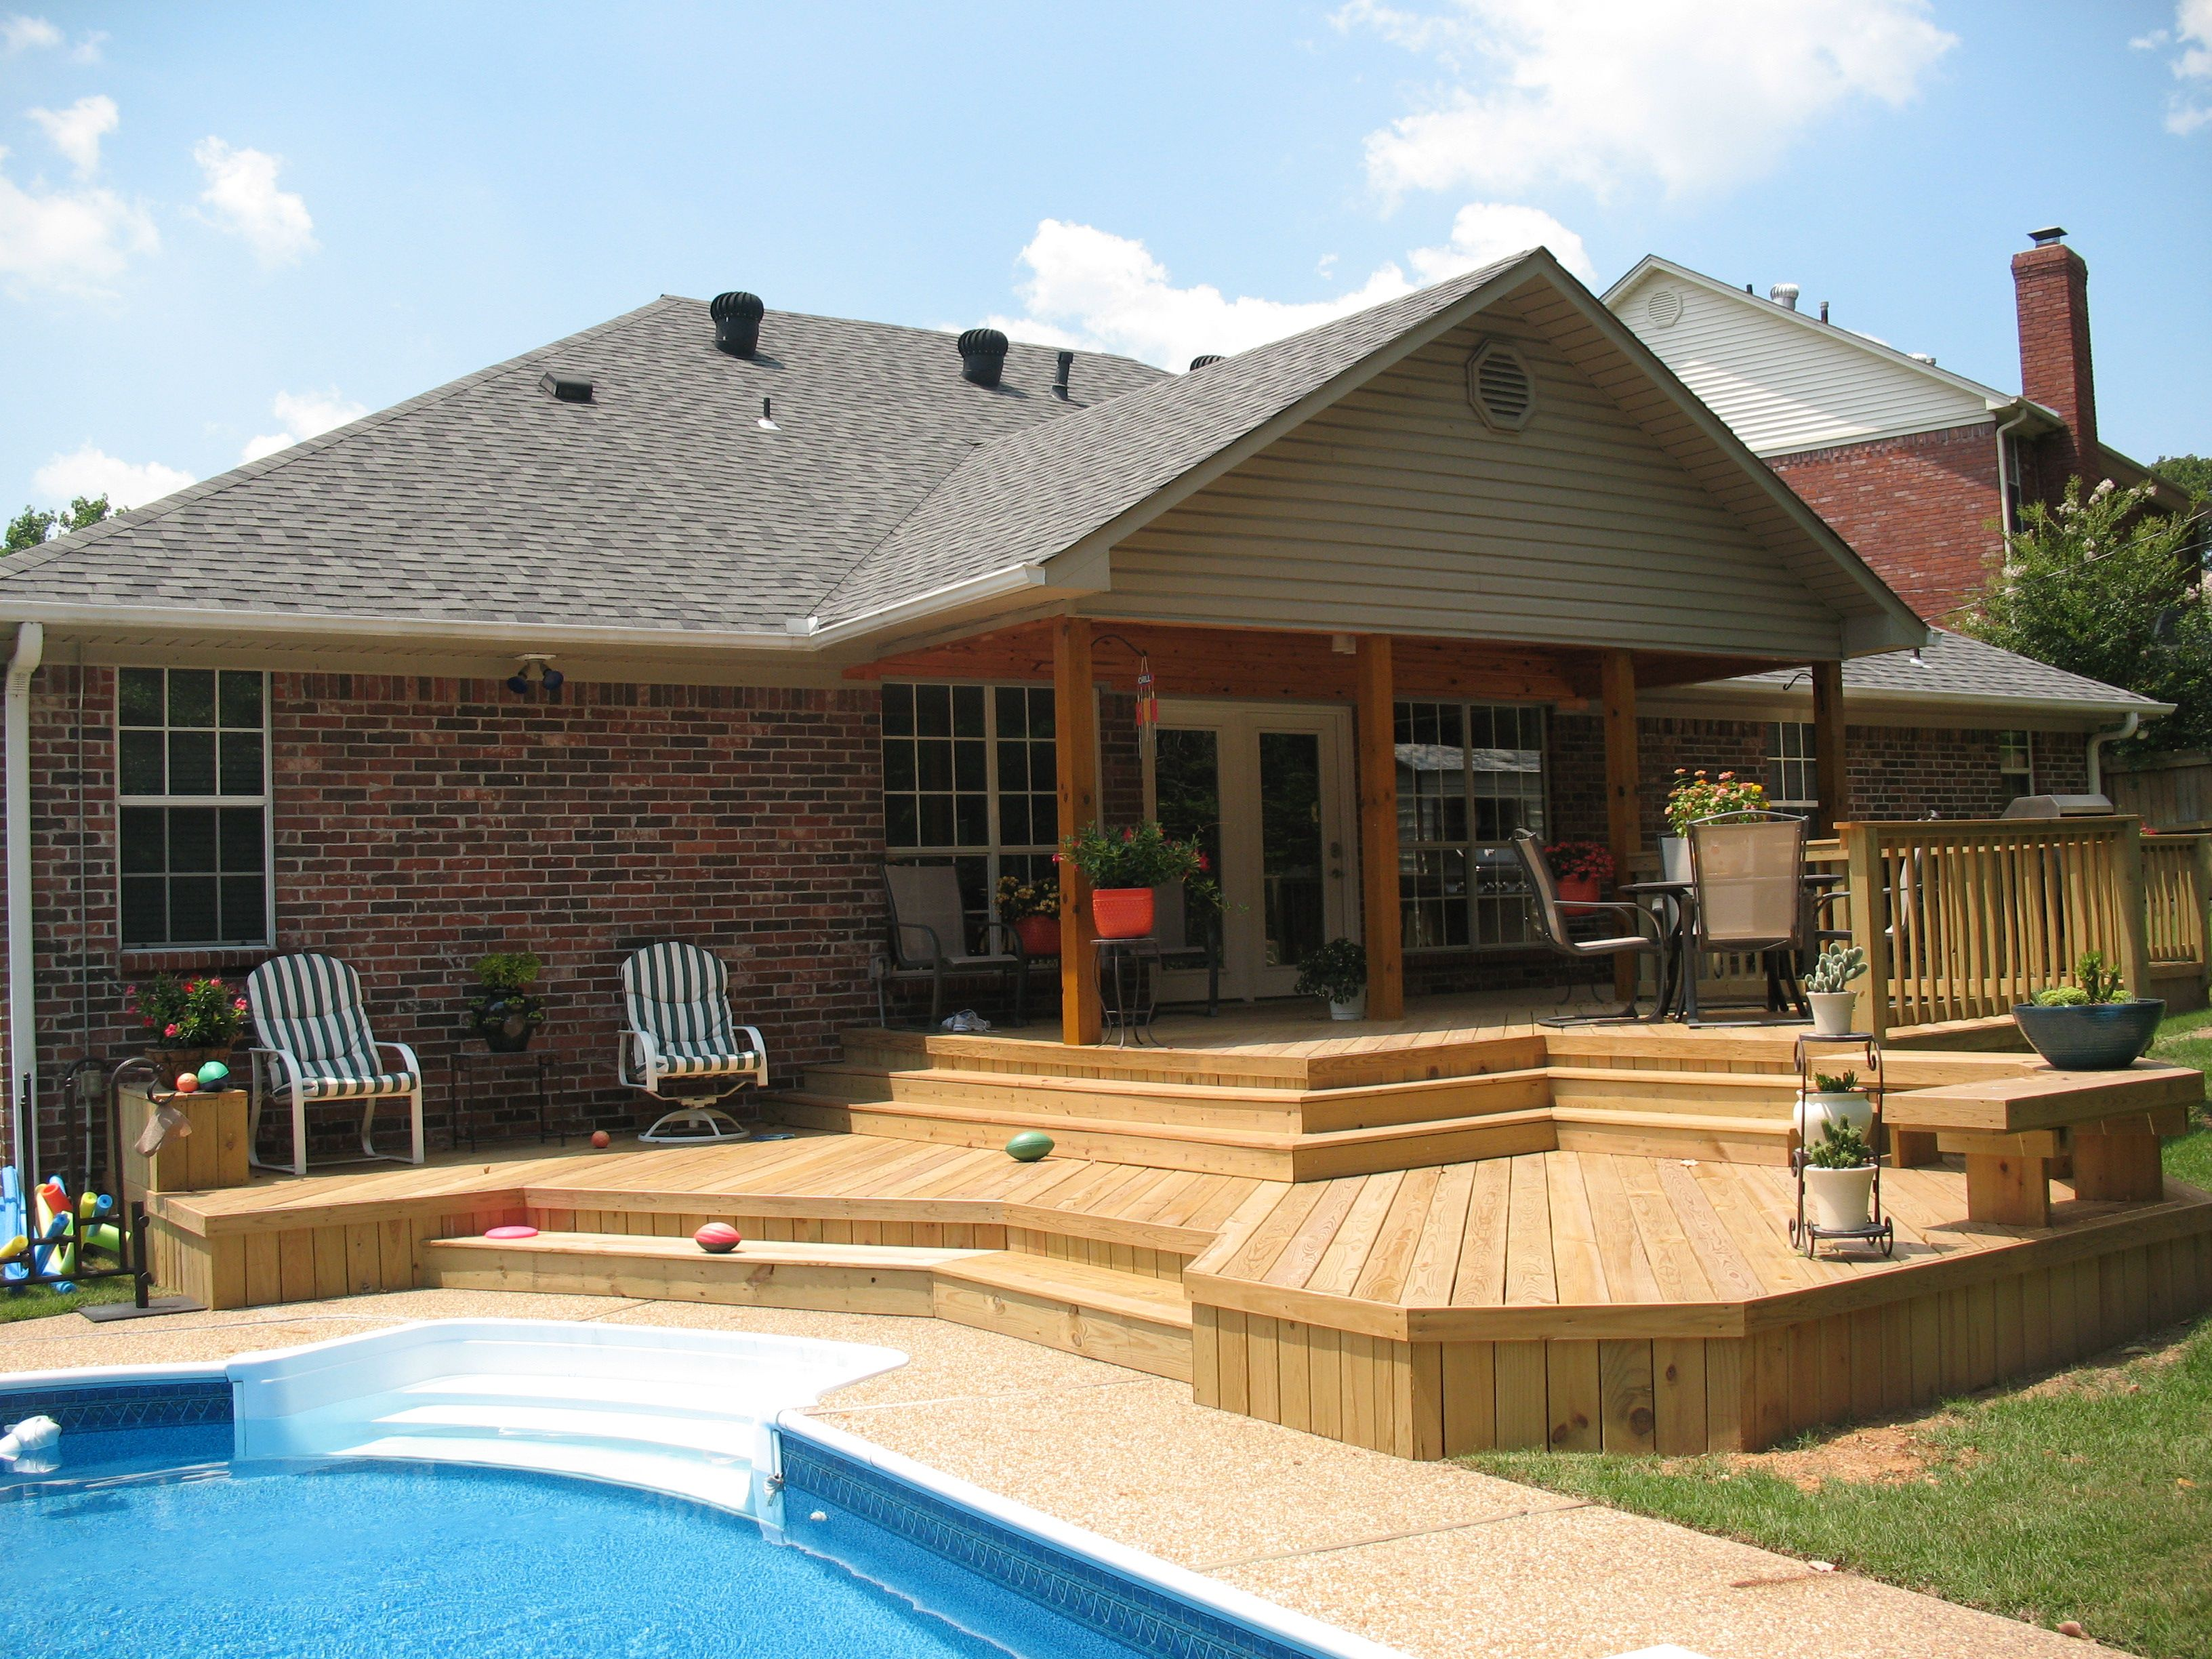 deck design ideas pool deck multi level deck deck builder in arkansas - Home Deck Design